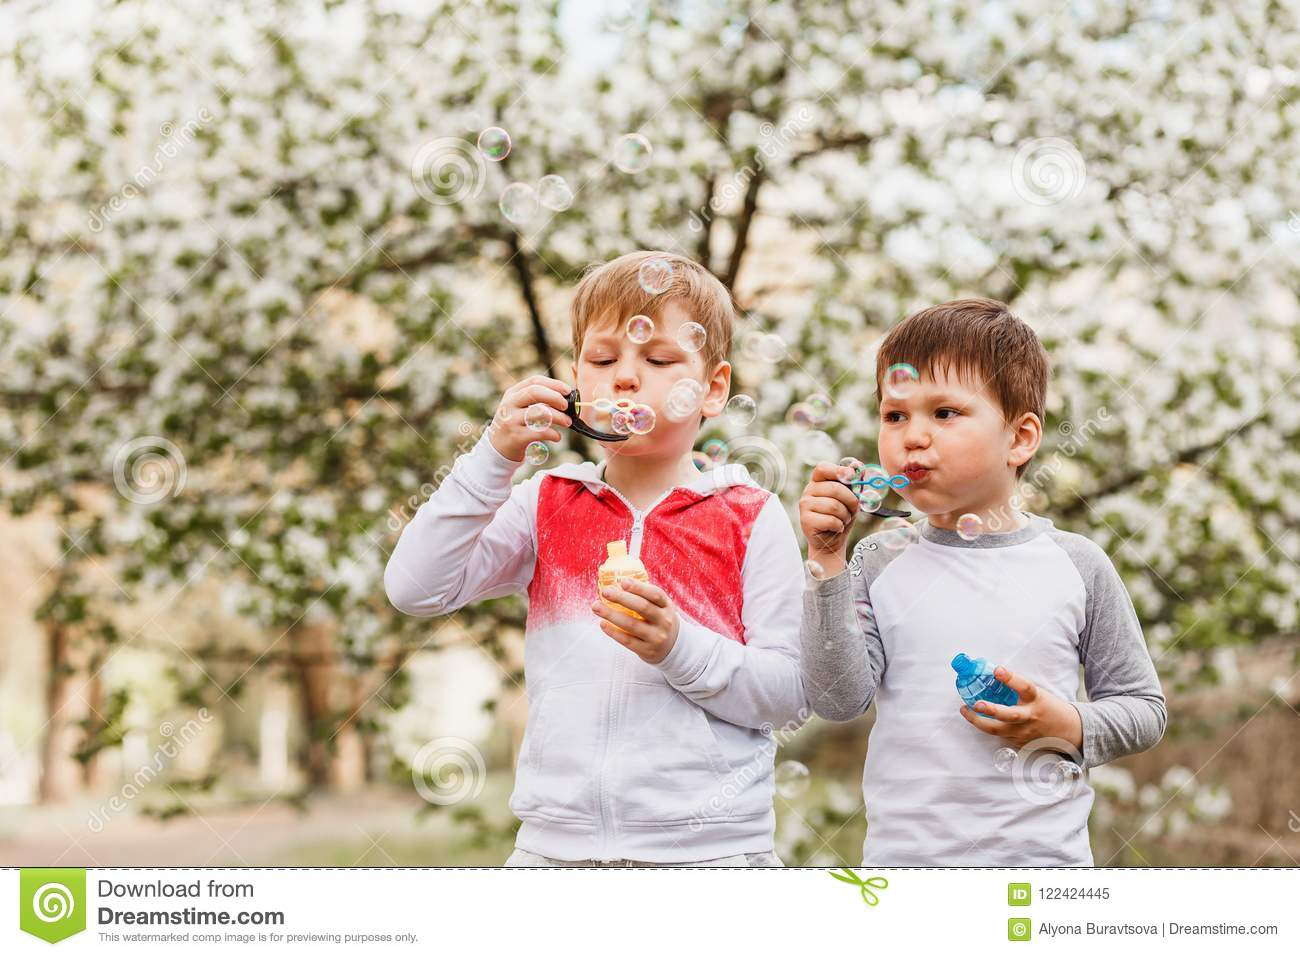 Two boys inflate soap bubbles in the summer outdoors